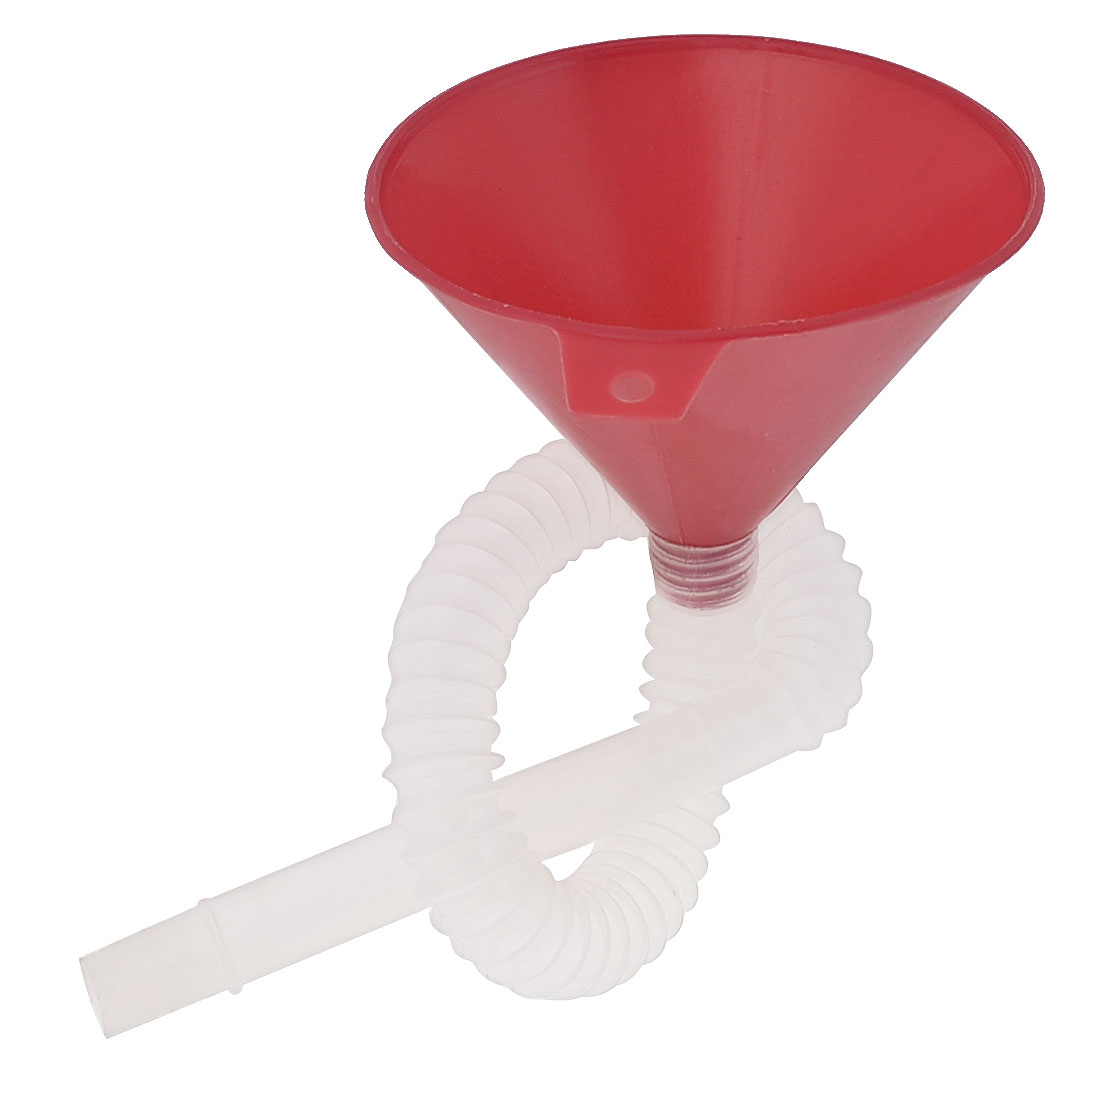 Universal Car Mouth Flexible Hose Gas Oil Fuel Funnel Red White